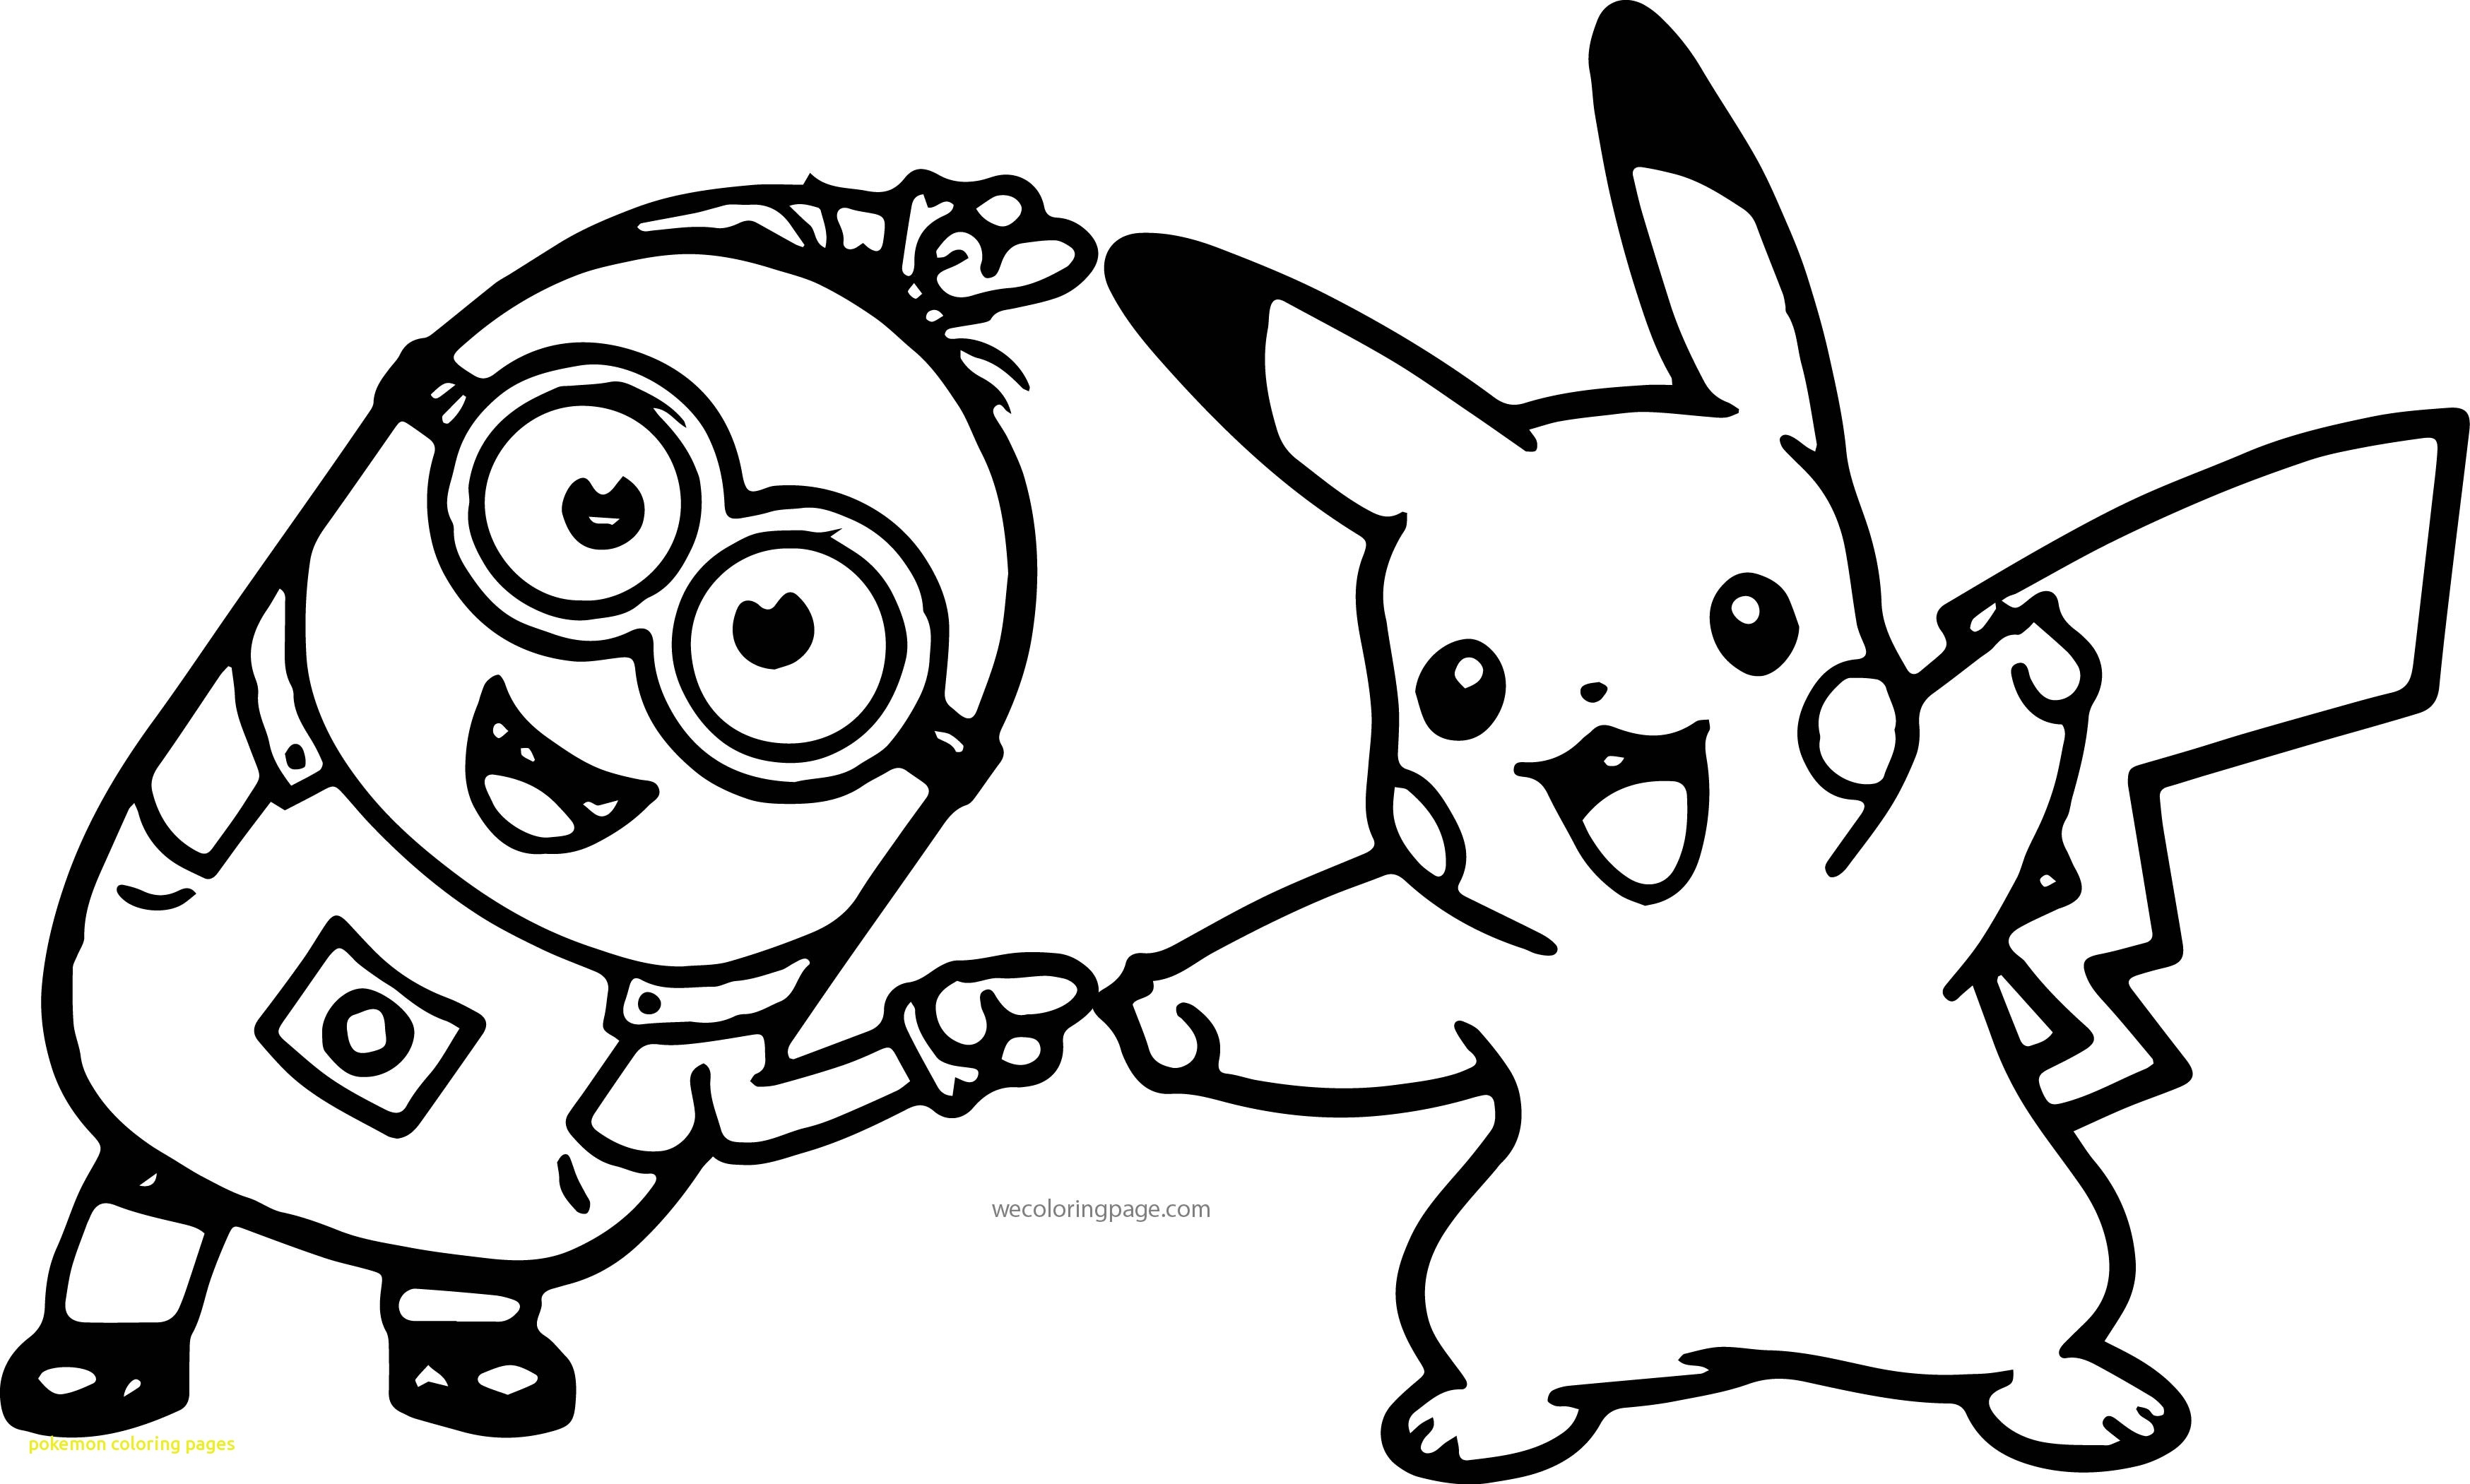 charmander colouring pages charmander coloring pages to download and print for free colouring charmander pages 1 1